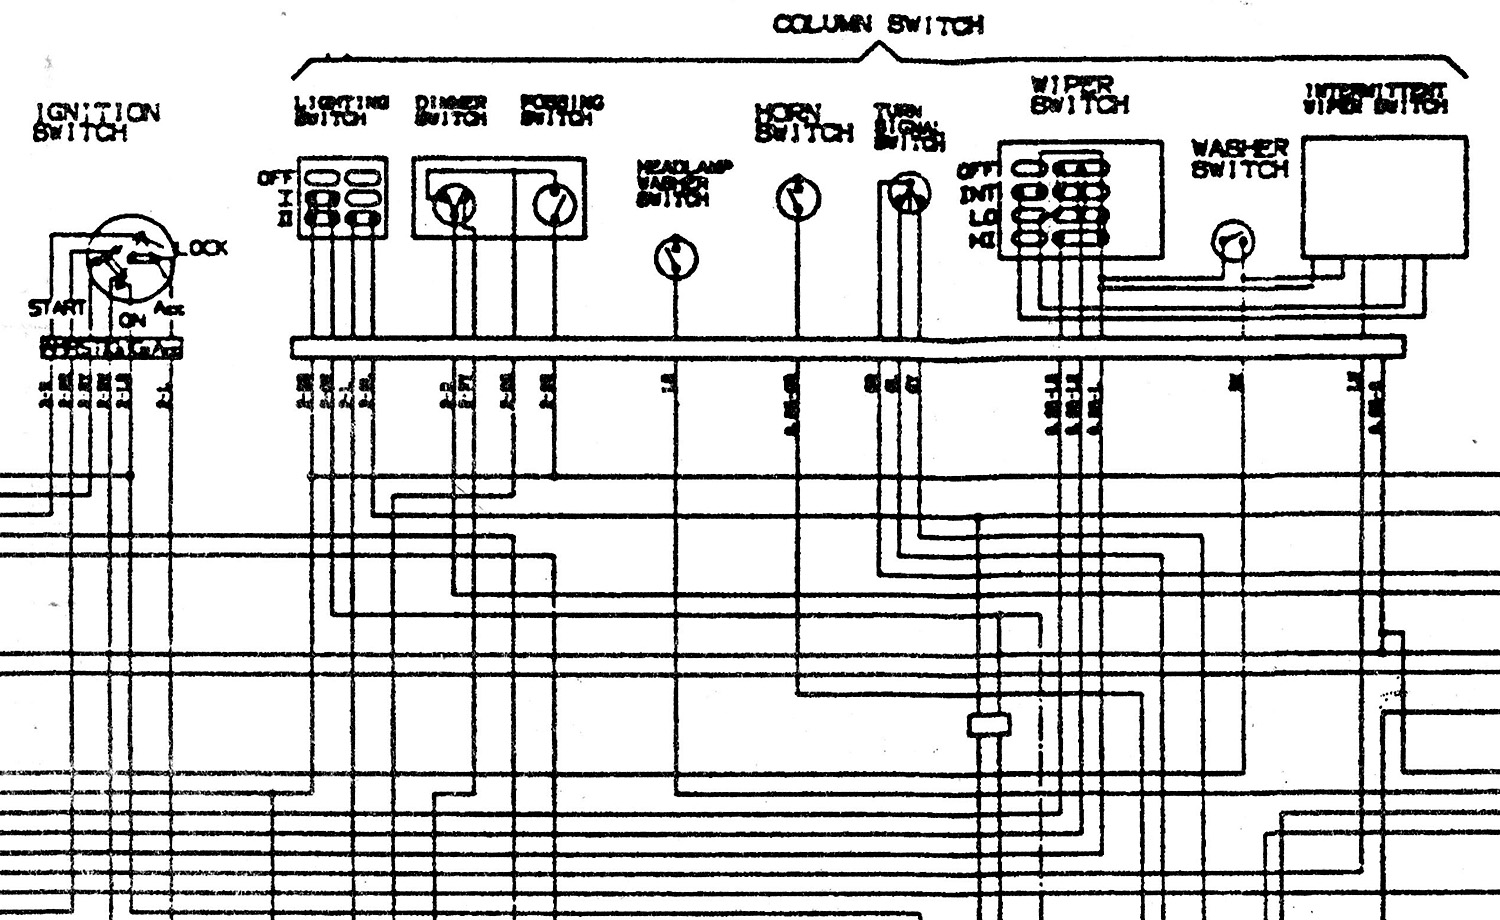 Wiring Diagram Mitsubishi Delica L300 Project Dino Evolution Evo 9